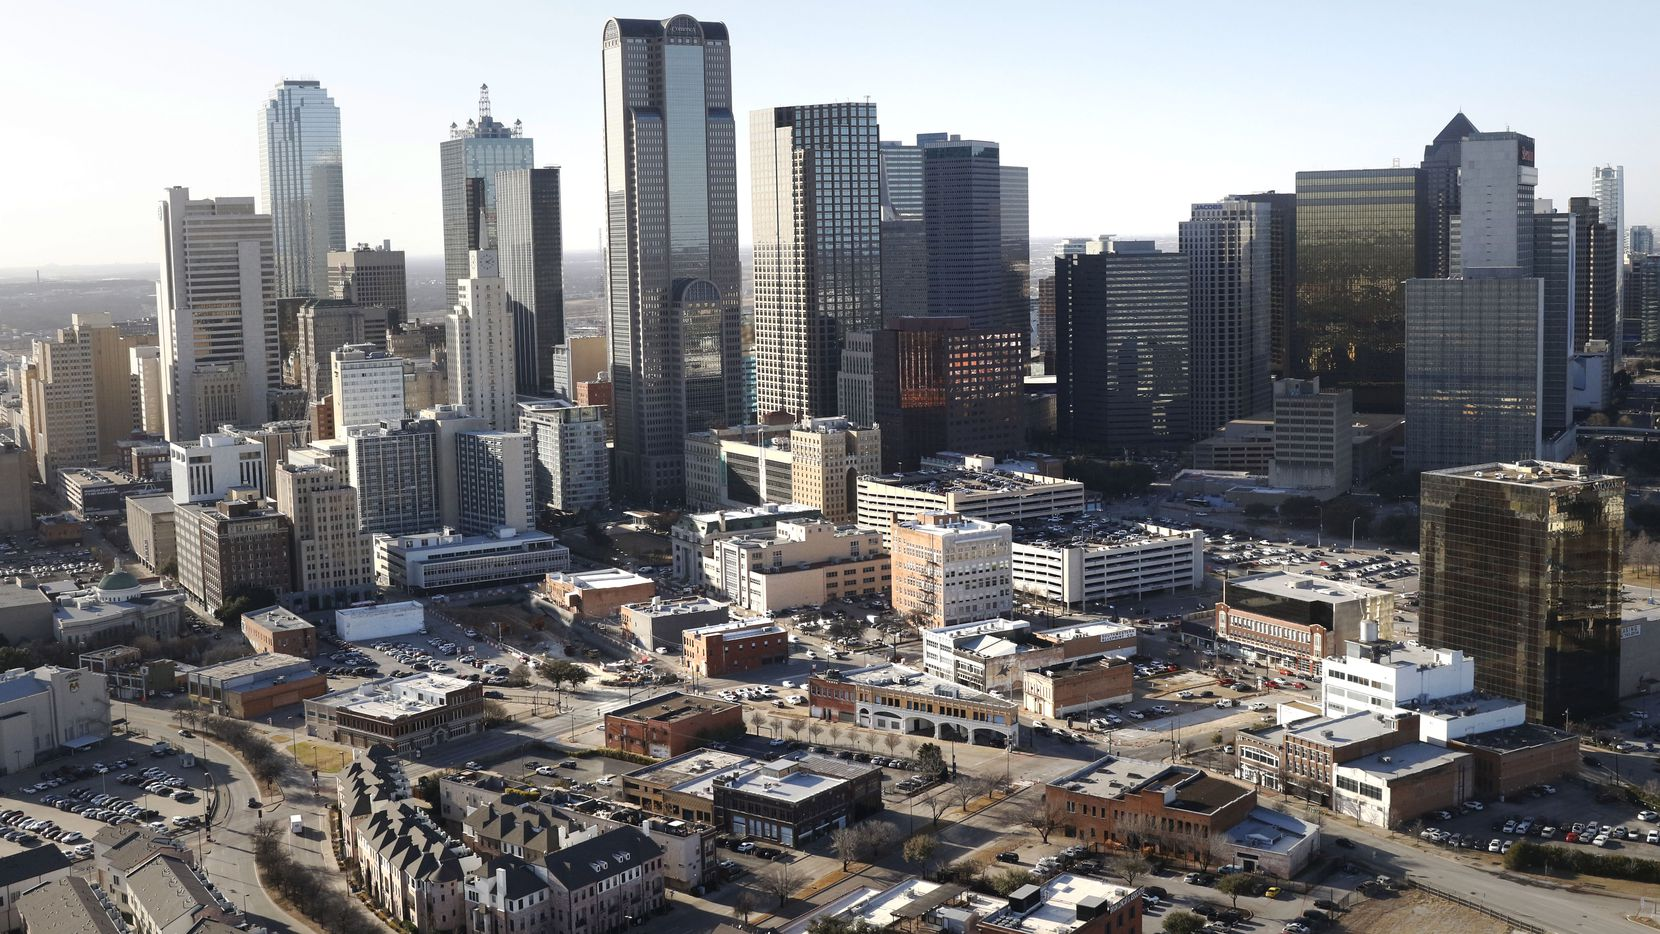 New apartments, hotels and restaurants have added to the street life in downtown Dallas.